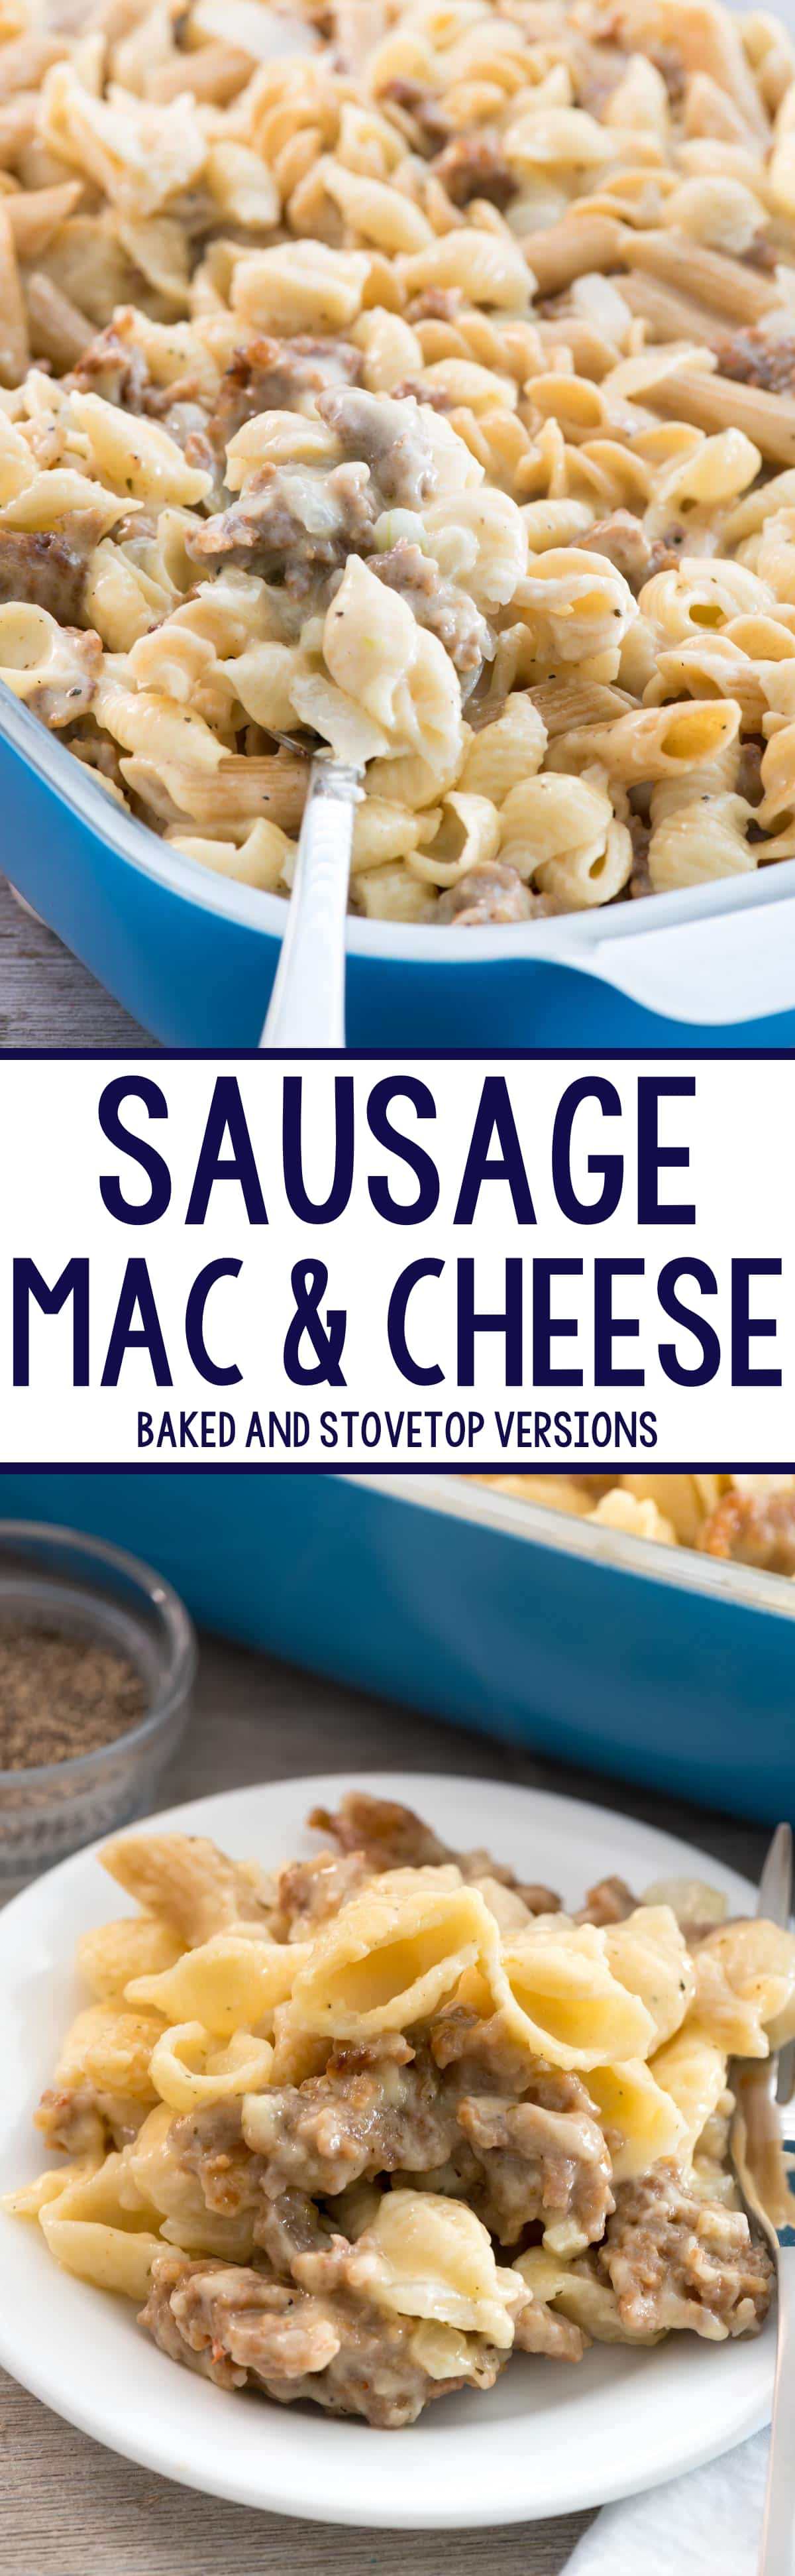 Sausage Mac & Cheese - this EASY macaroni and cheese recipe is full of Italian sausage! It's the perfect comfort food. I've been making this FOR YEARS and everyone always loves it.